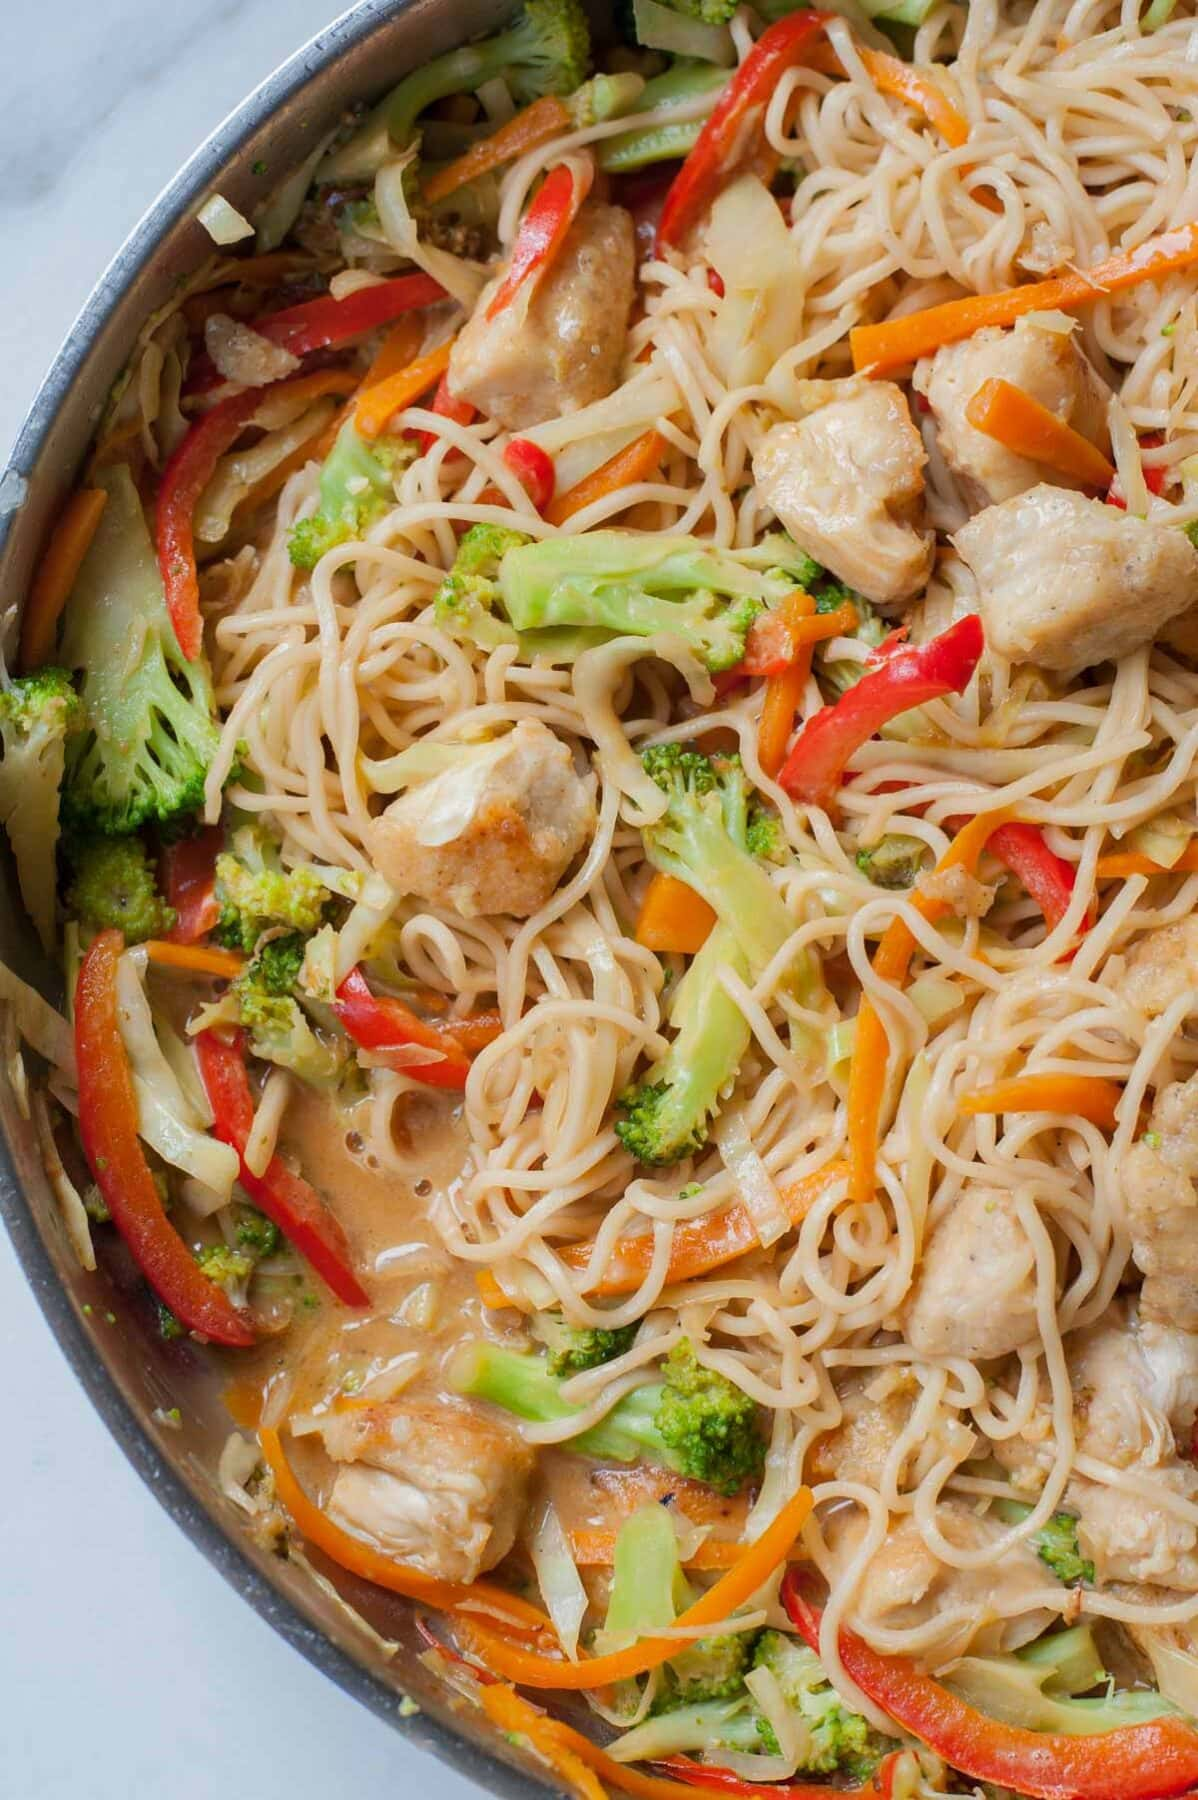 a closeup picture of peanut chicken noodles with vegetables in a frying pan